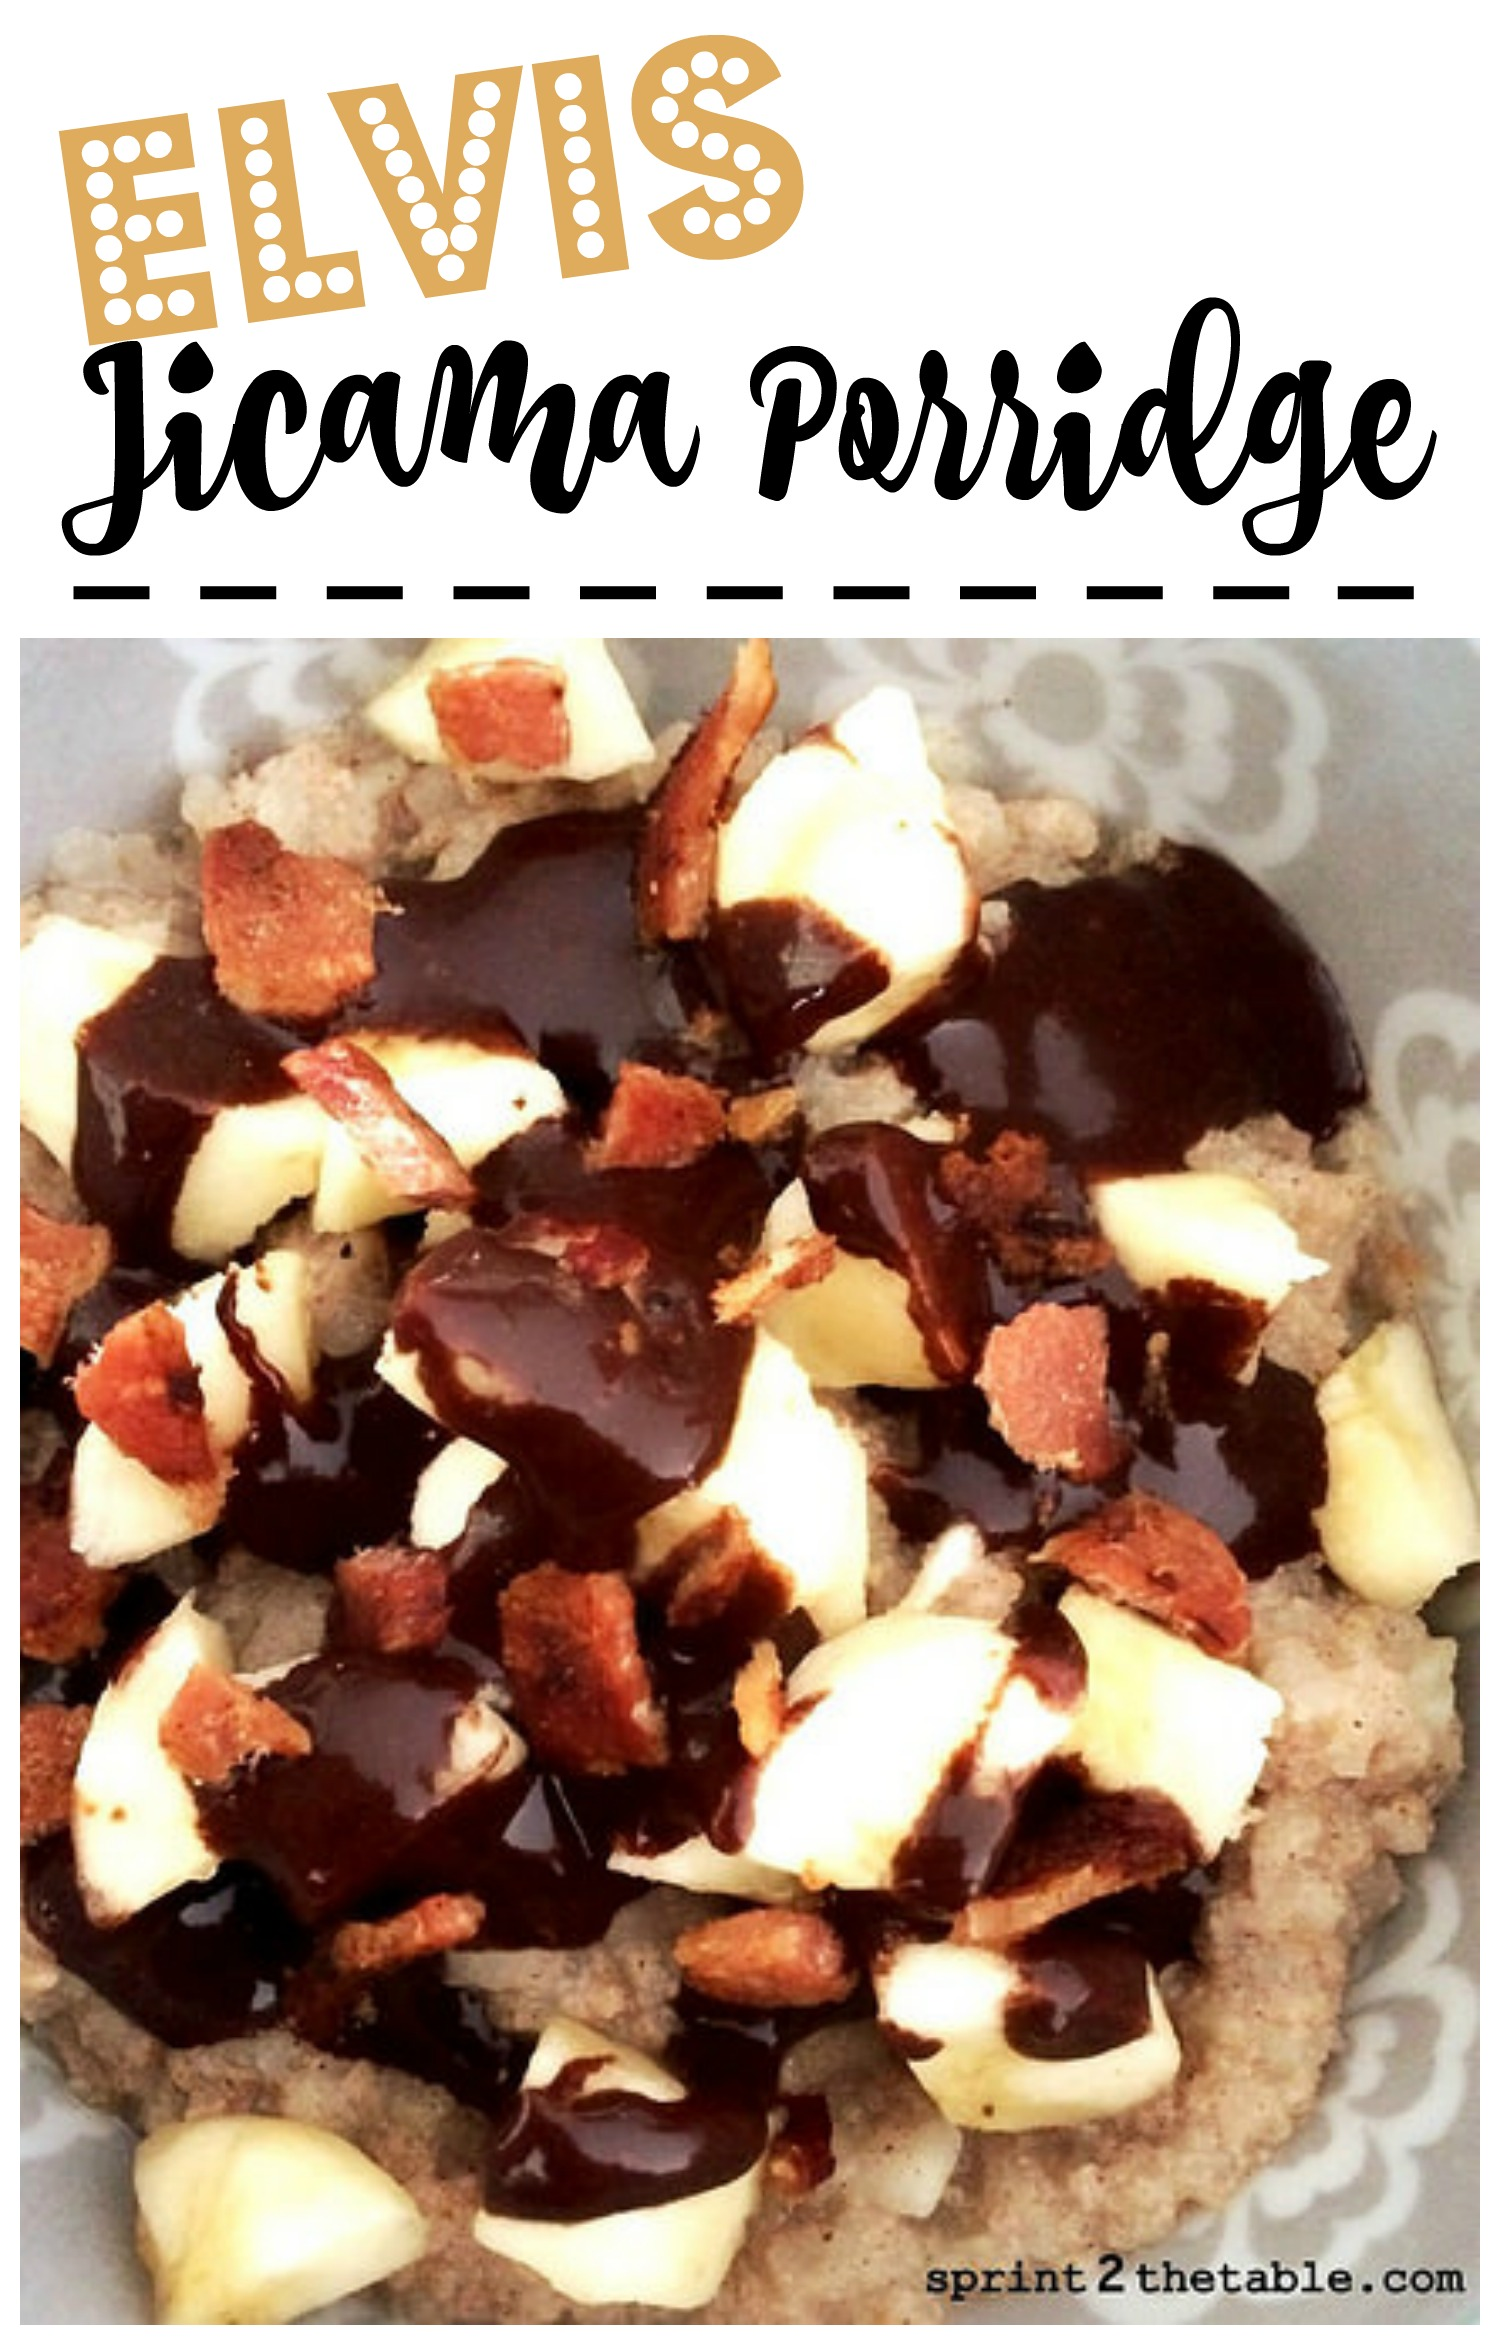 Elvis Jicama Porridge - a healthy, fiber-rich breakfast!